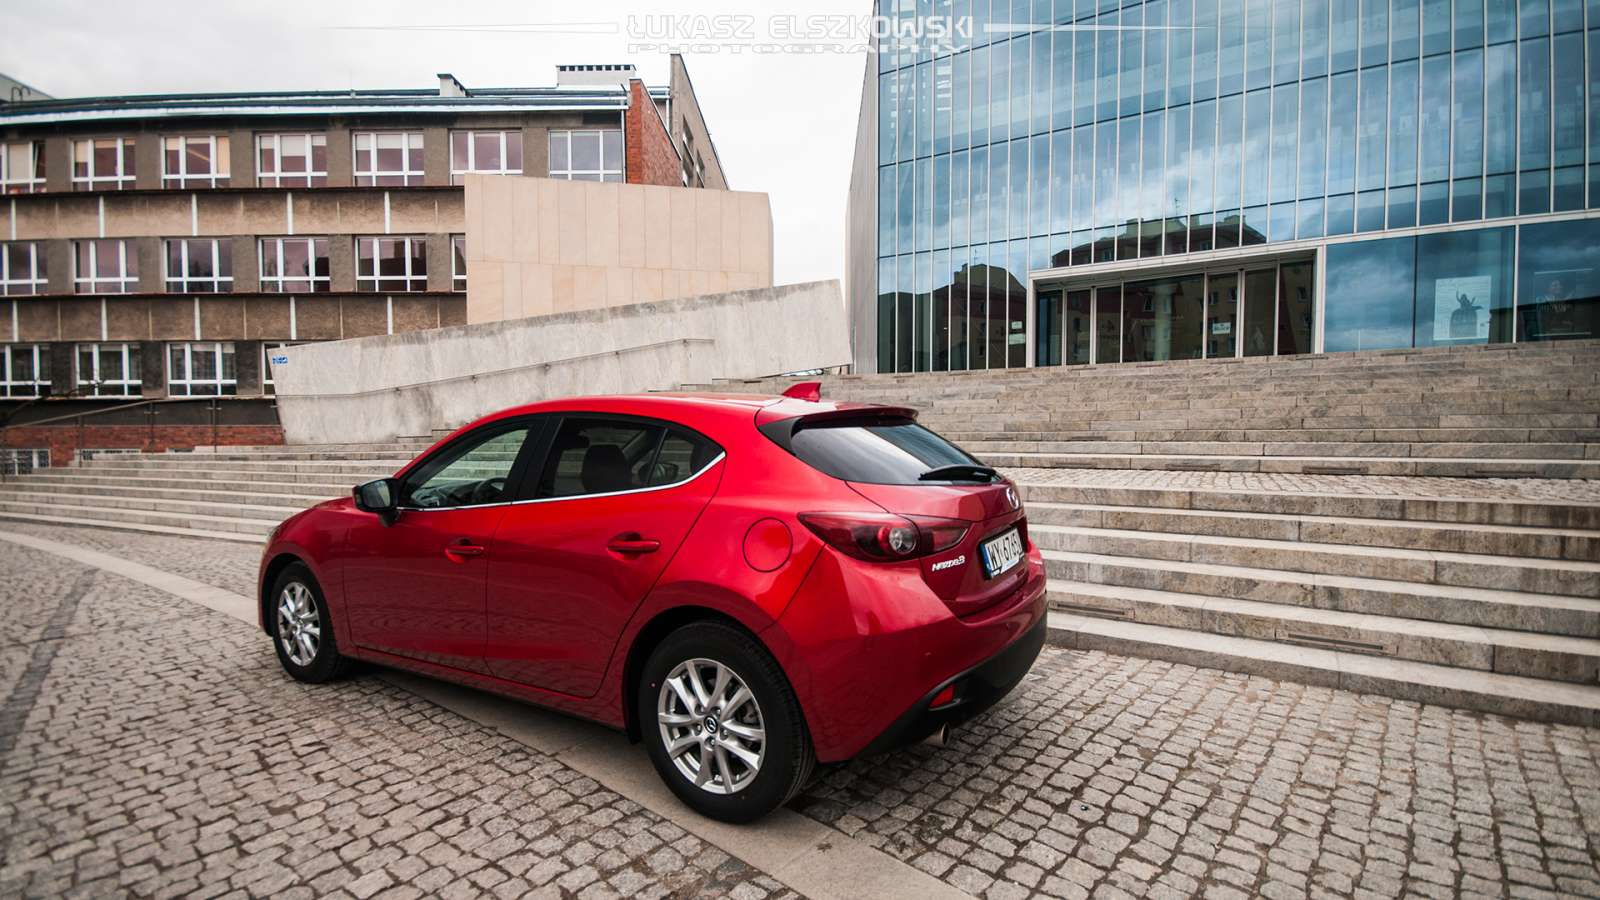 mazda 3 2 0 skyactiv g 2 0 165 km skyenergy motofilm. Black Bedroom Furniture Sets. Home Design Ideas